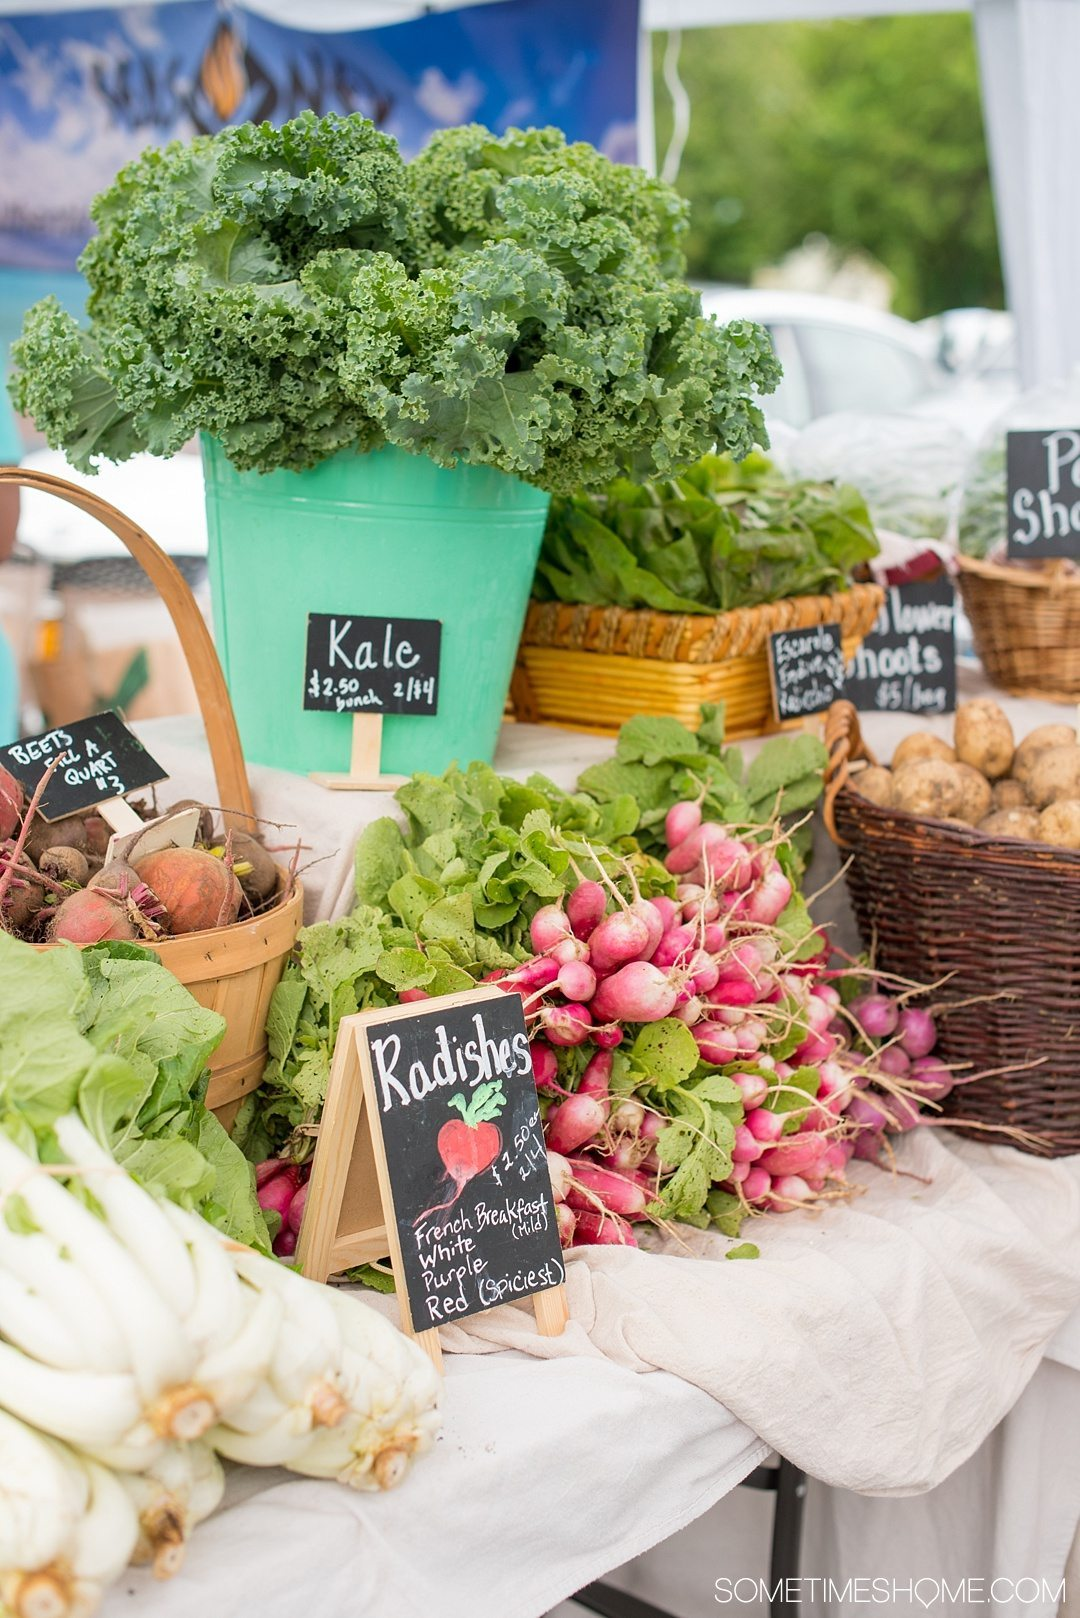 Your Complete Guide to Saugerties, New York on Sometimes Home travel blog. Photo of the farmers market offerings.